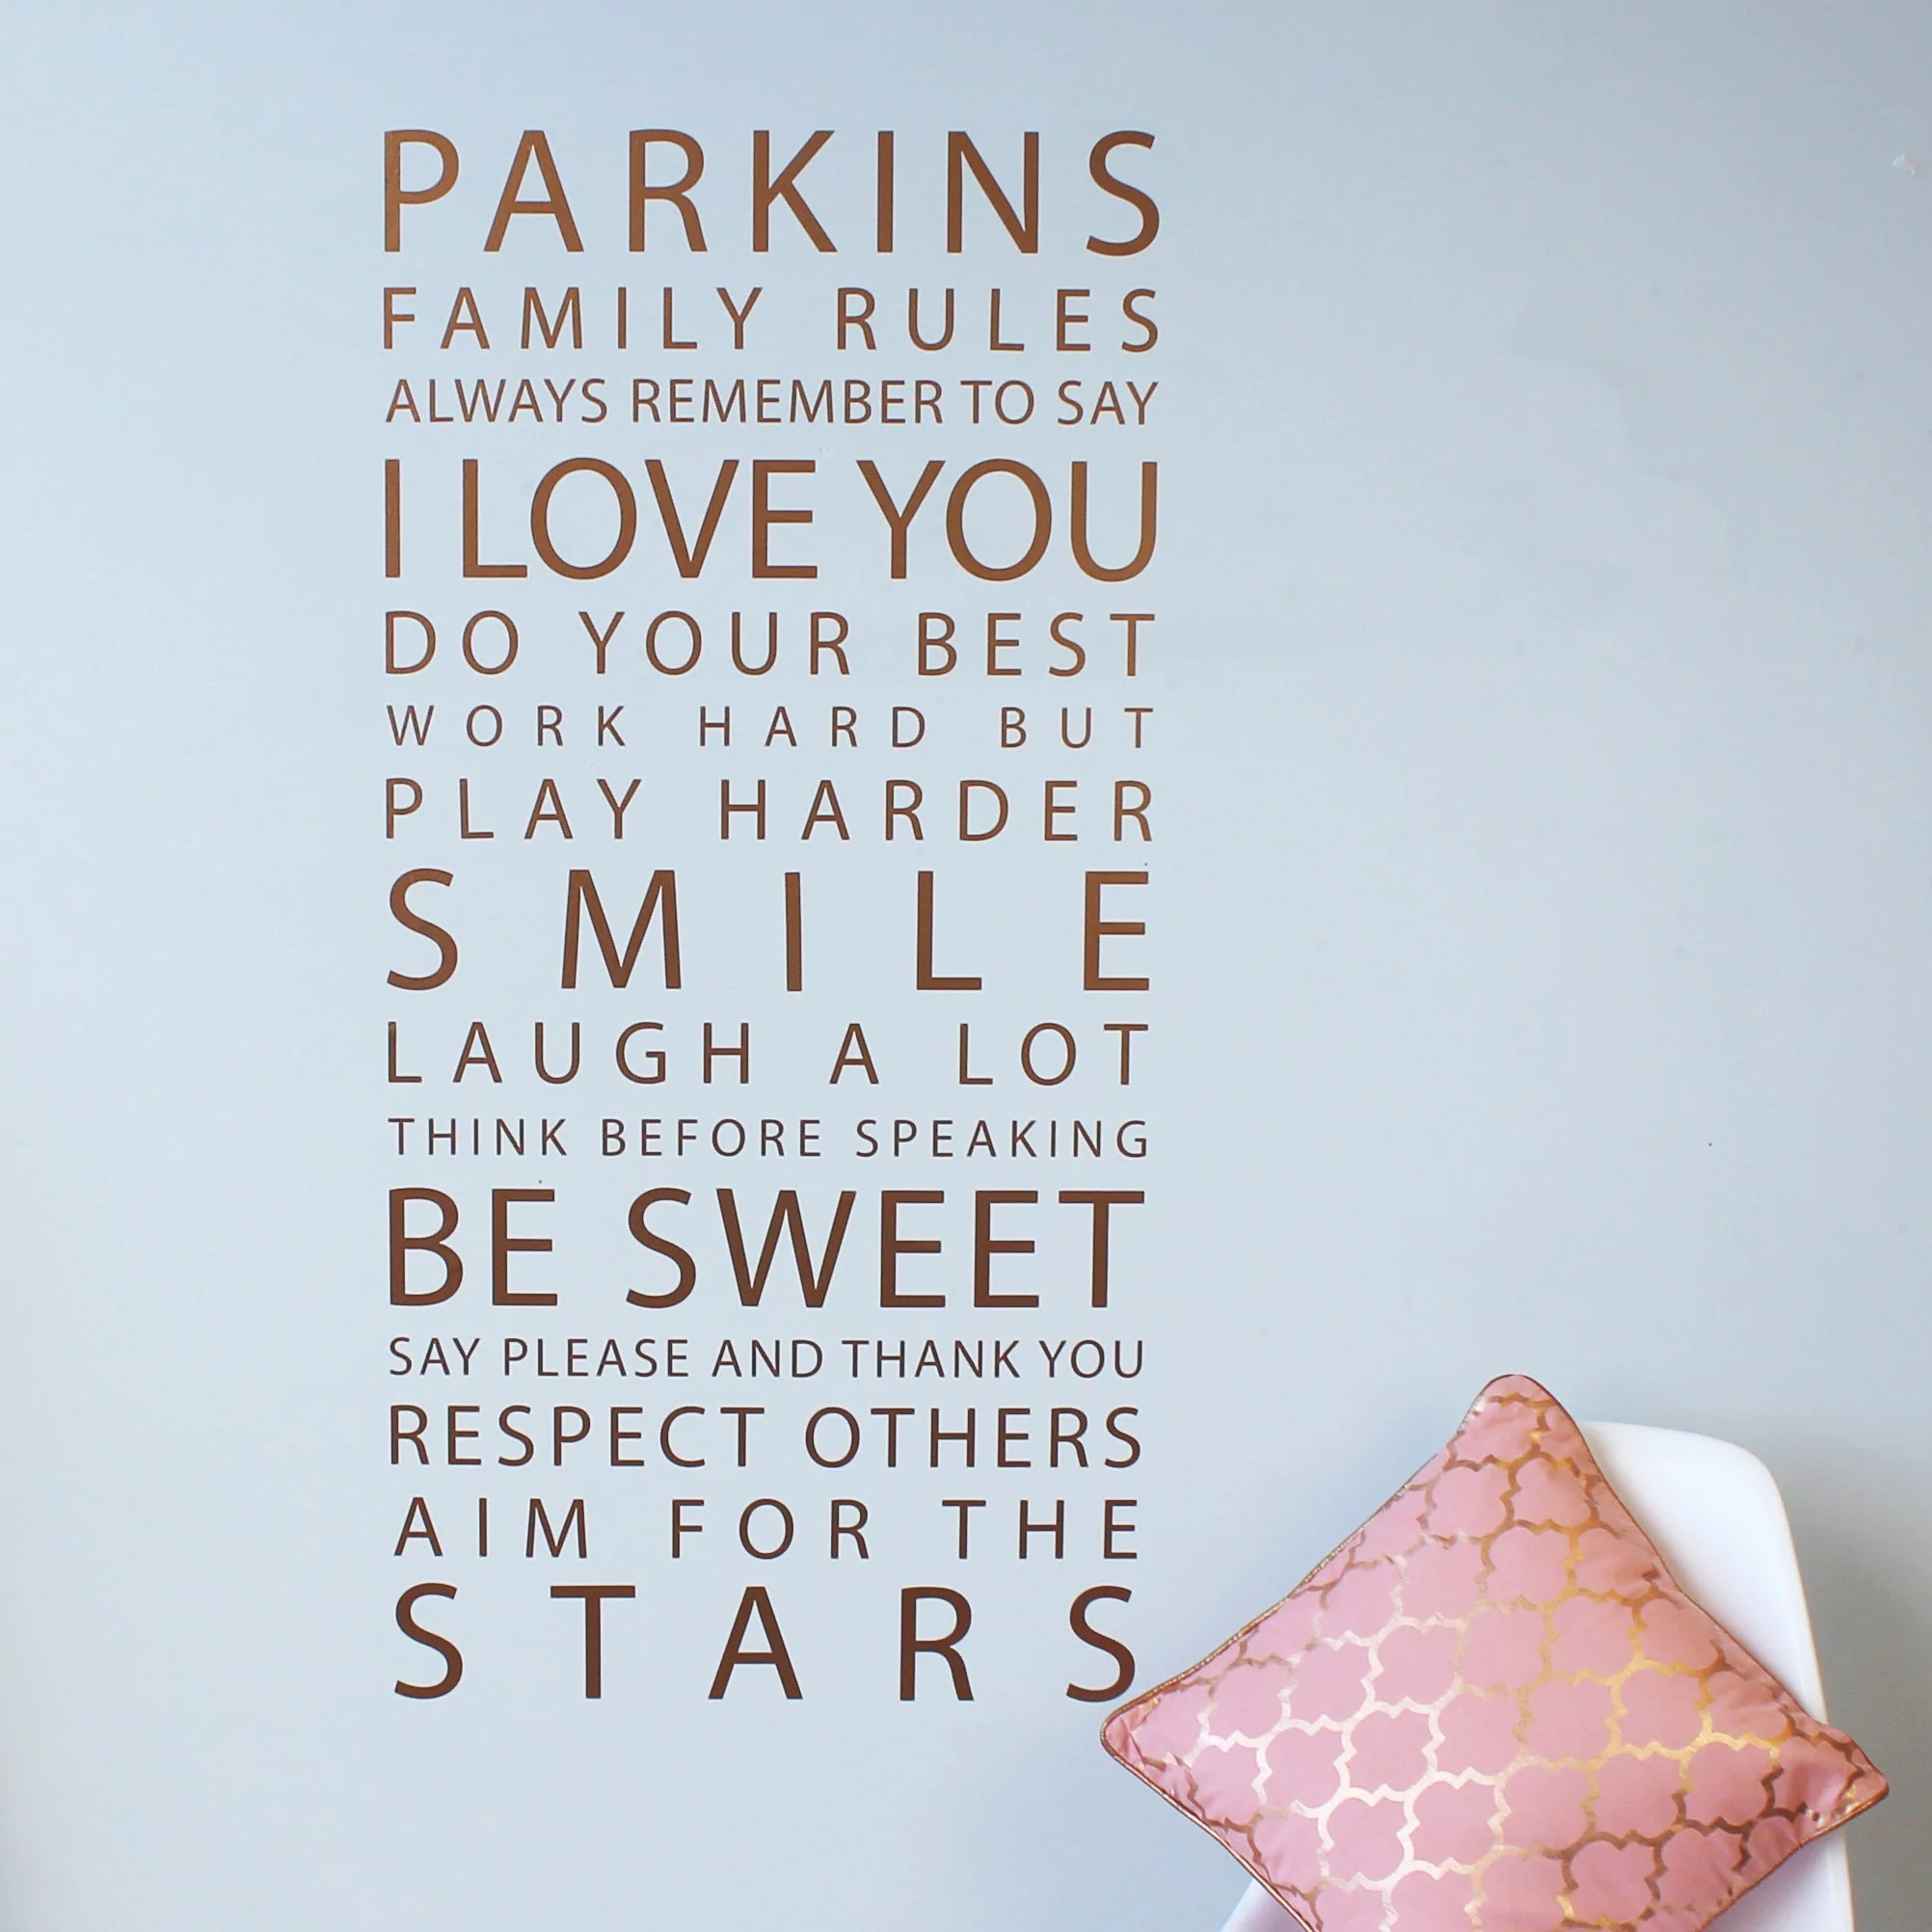 Personalised Sticker Personalised Metallic Gold Family Rules Wall Sticker Parkins